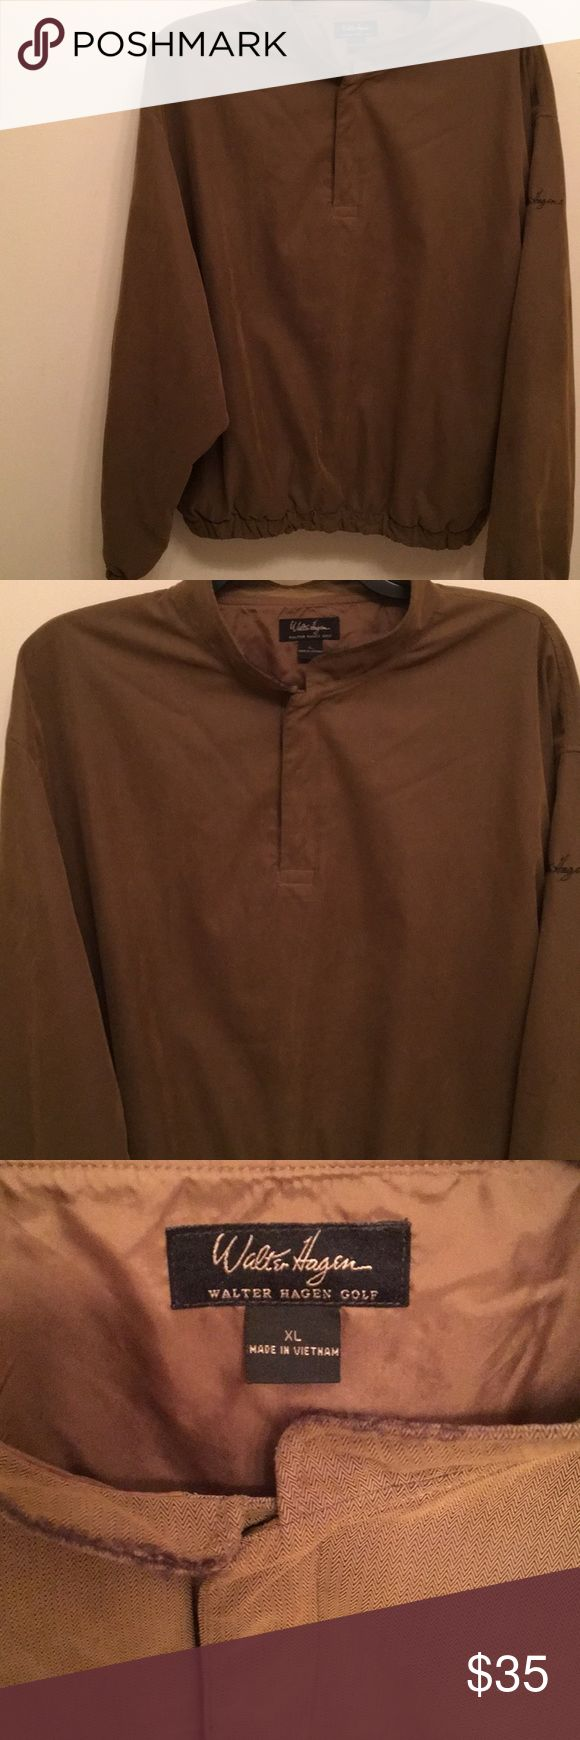 Walter Hagen Golf Jacket Walter Hagen Golf Jacket great condition color is olive green Walter Hagen Jackets & Coats Performance Jackets